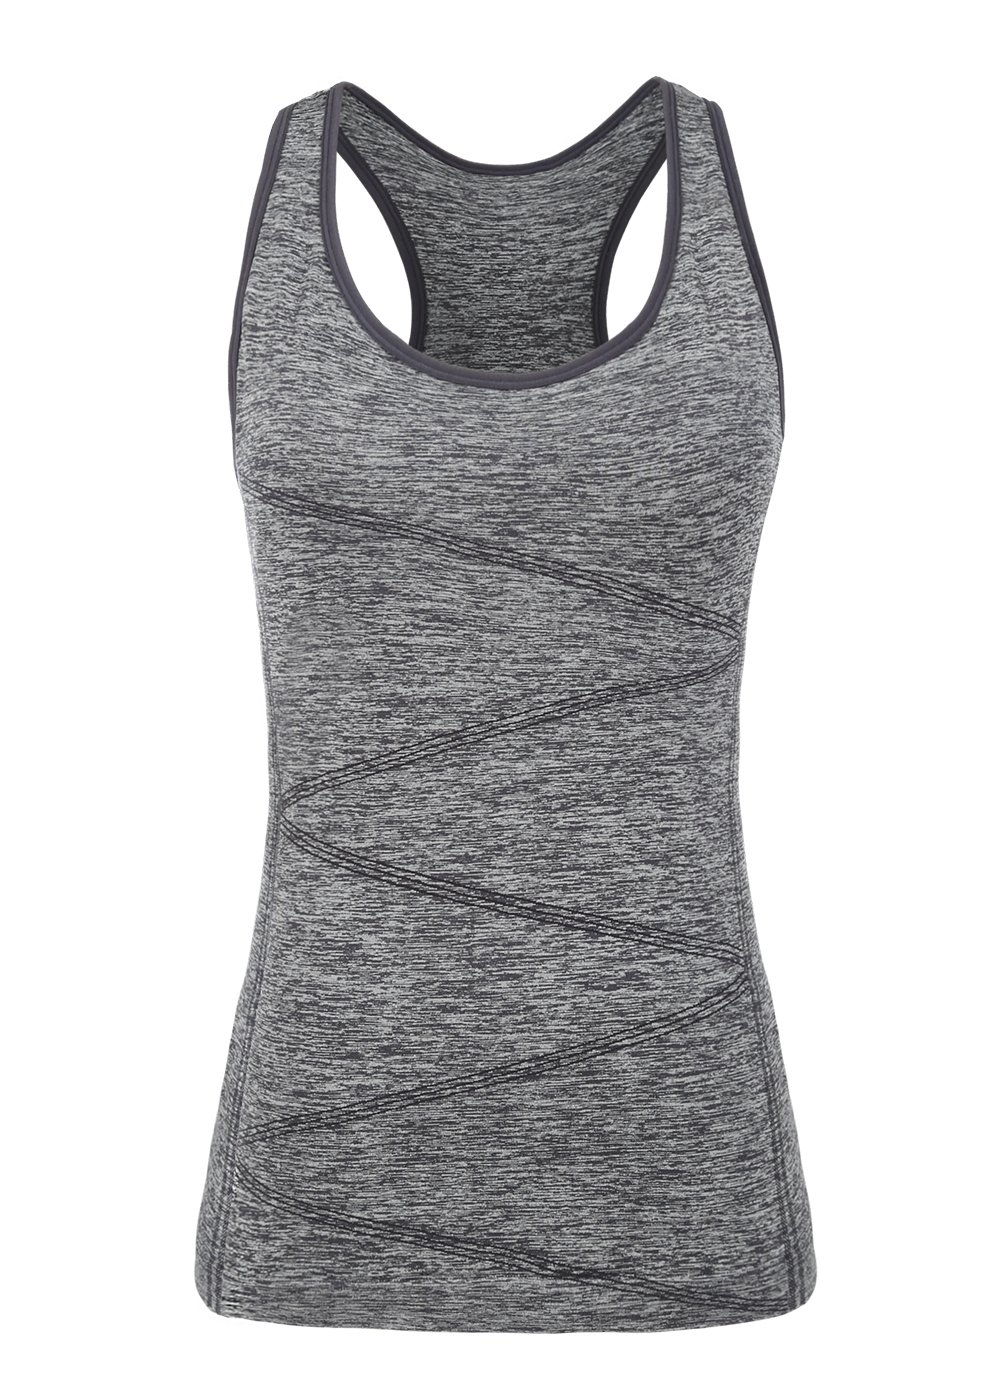 2627dd8d31e58 Best Rated in Women s Yoga Shirts   Helpful Customer Reviews ...